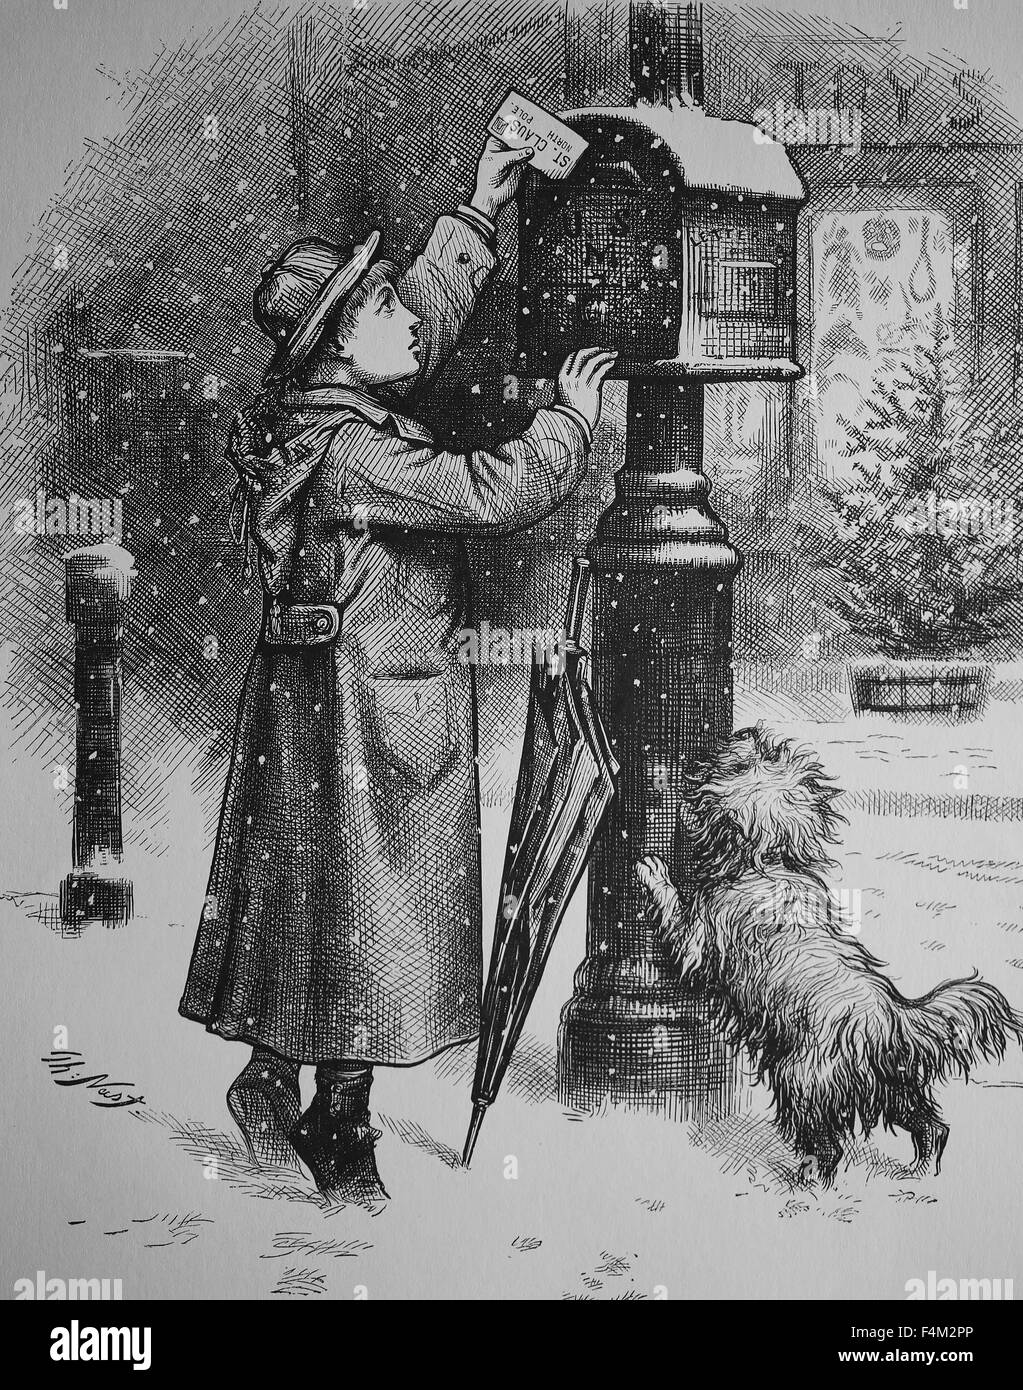 United States. 19th century. Christmas Post. Engraving by Thomas Nast. Published in Harper's Weekly. - Stock Image